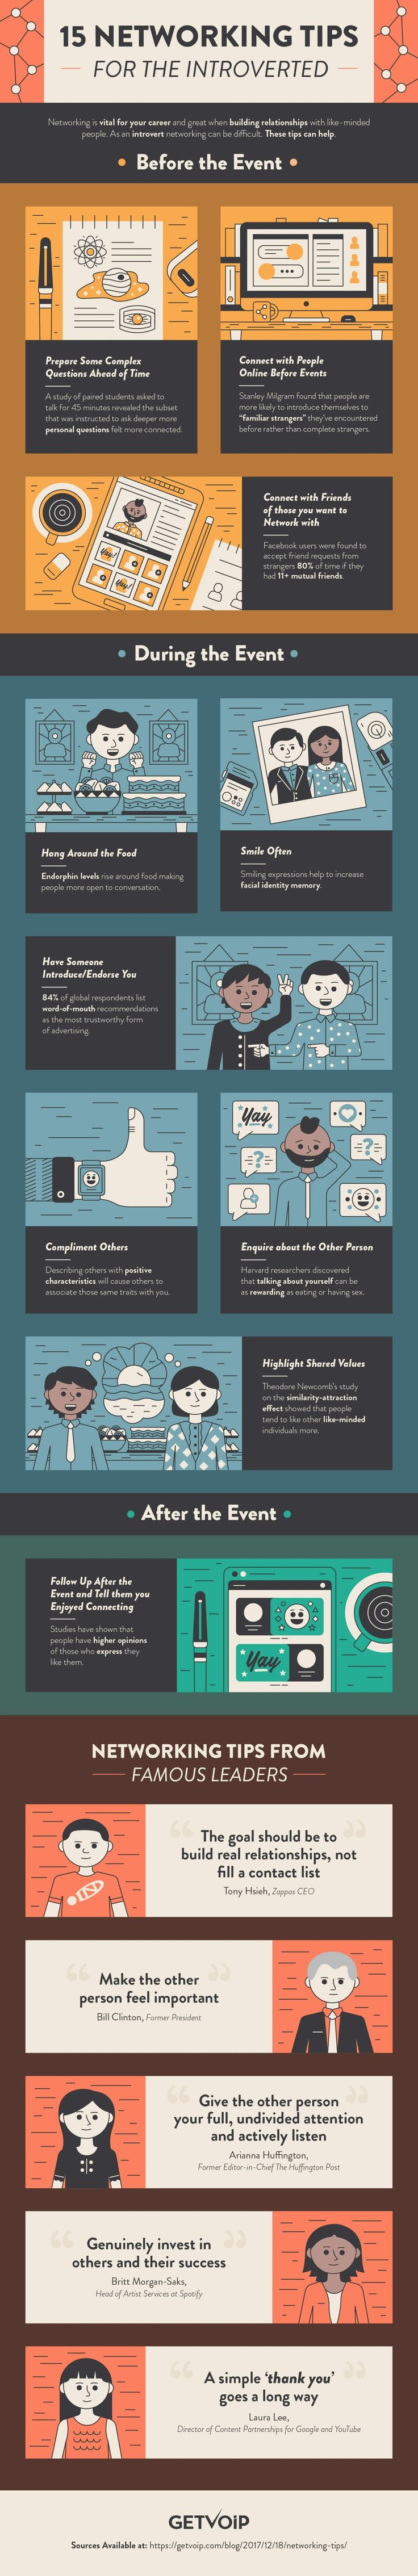 15 Networking Tips for the Introverted - #infographic